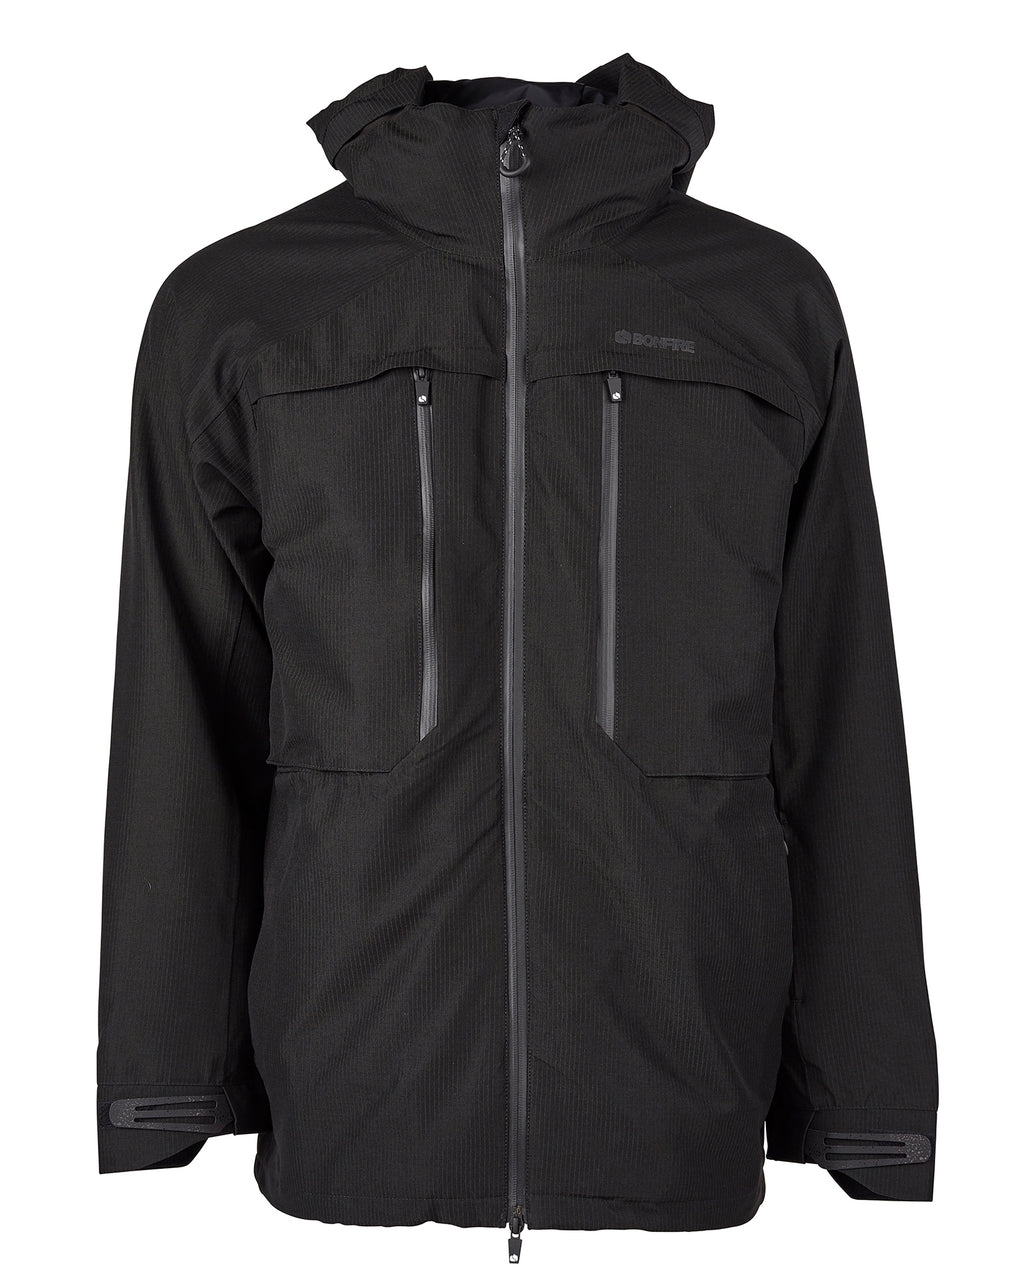 TERRA 2 LAYER STRETCH 3-IN-1 JACKET